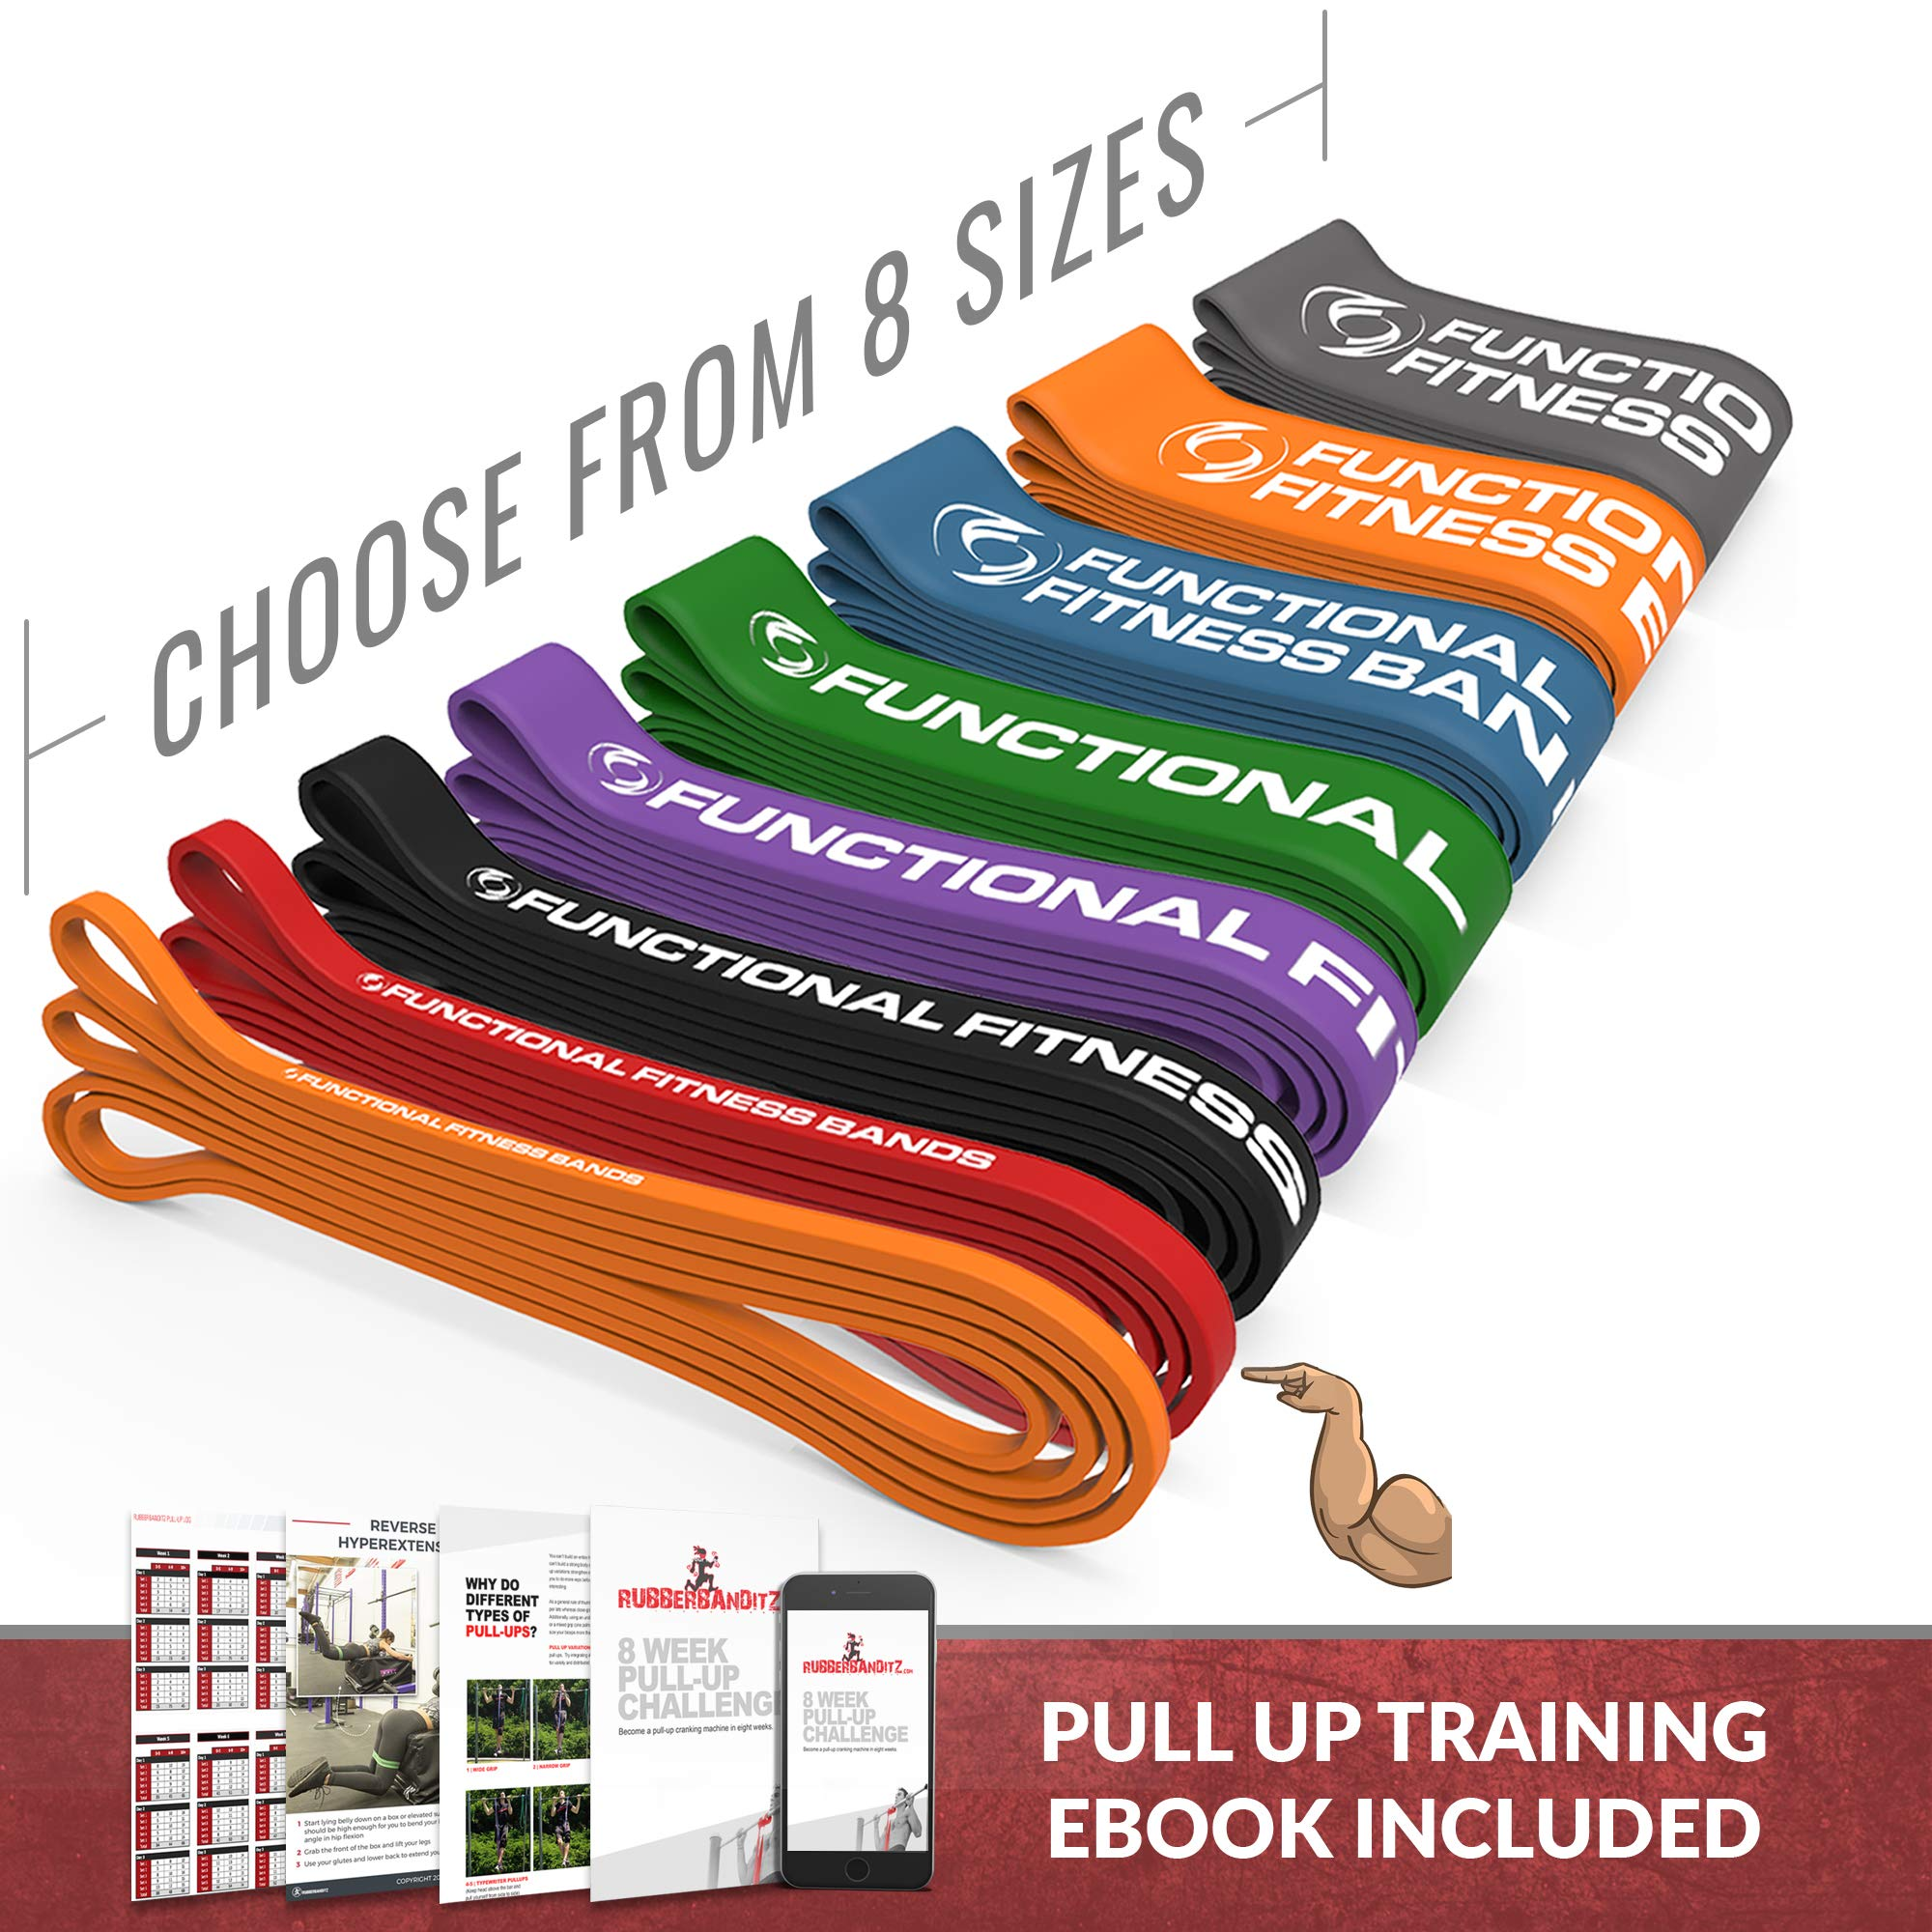 Rubberbanditz Functional Fitness Pull Up Assistance Resistance Band #2 - for 20-35 lbs of Resistance for Mobility, Stretching, Pilates, Exercise, Chin Ups, Powerlifting, Fitness & Crossfit by Rubberbanditz (Image #1)